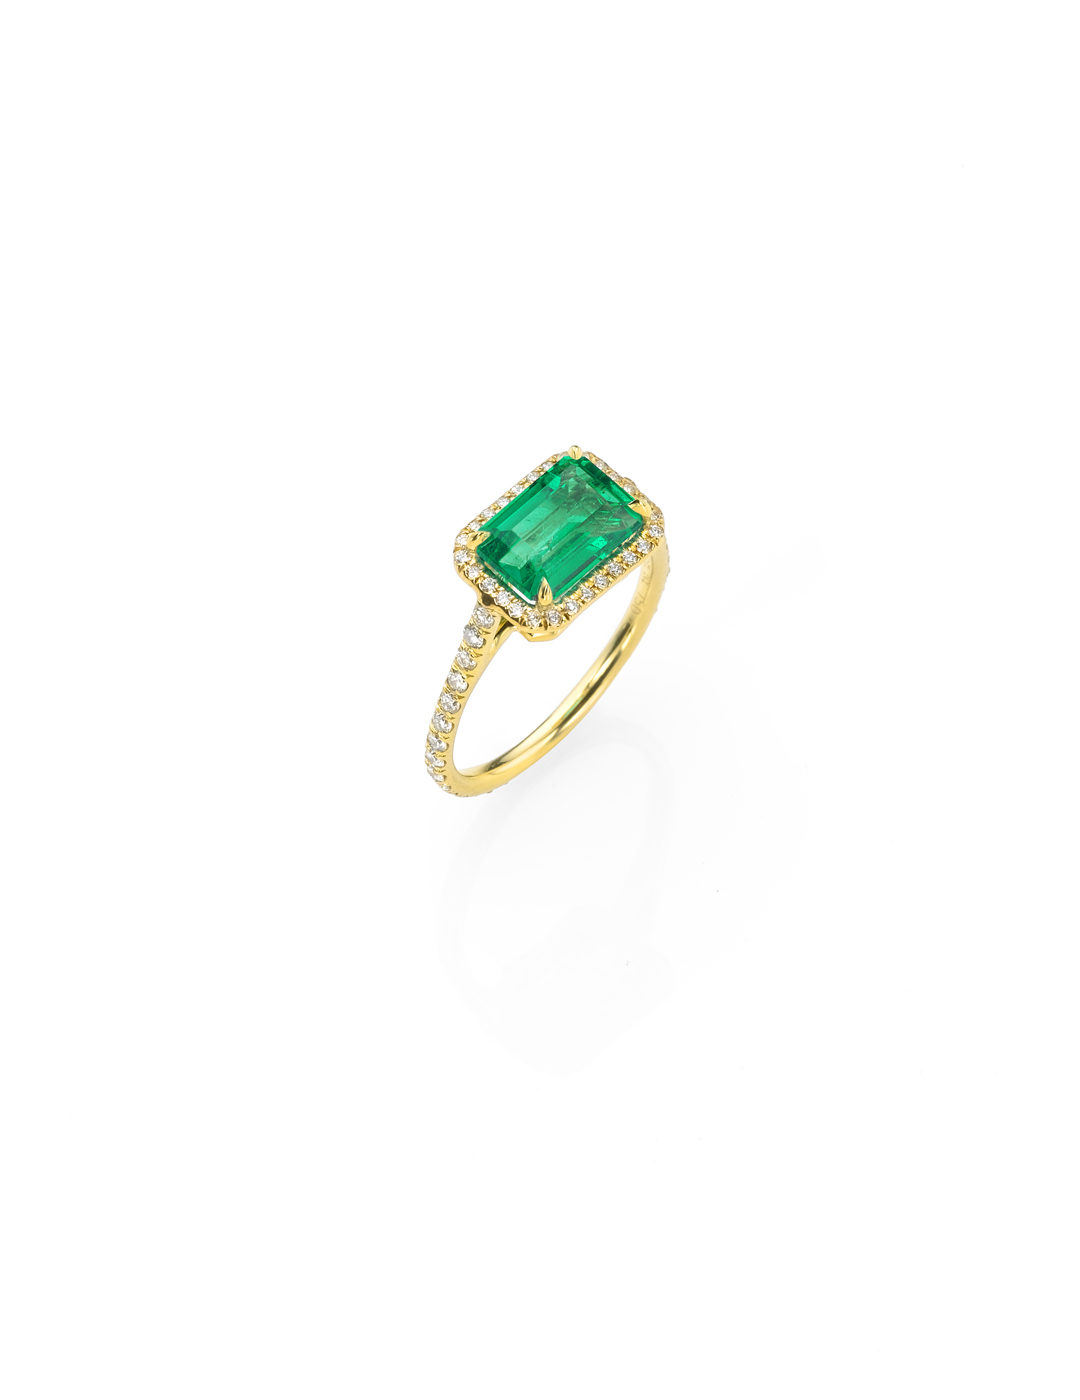 mish_products_rings_Arden-Blk-Diam-Marquise-Ring-5